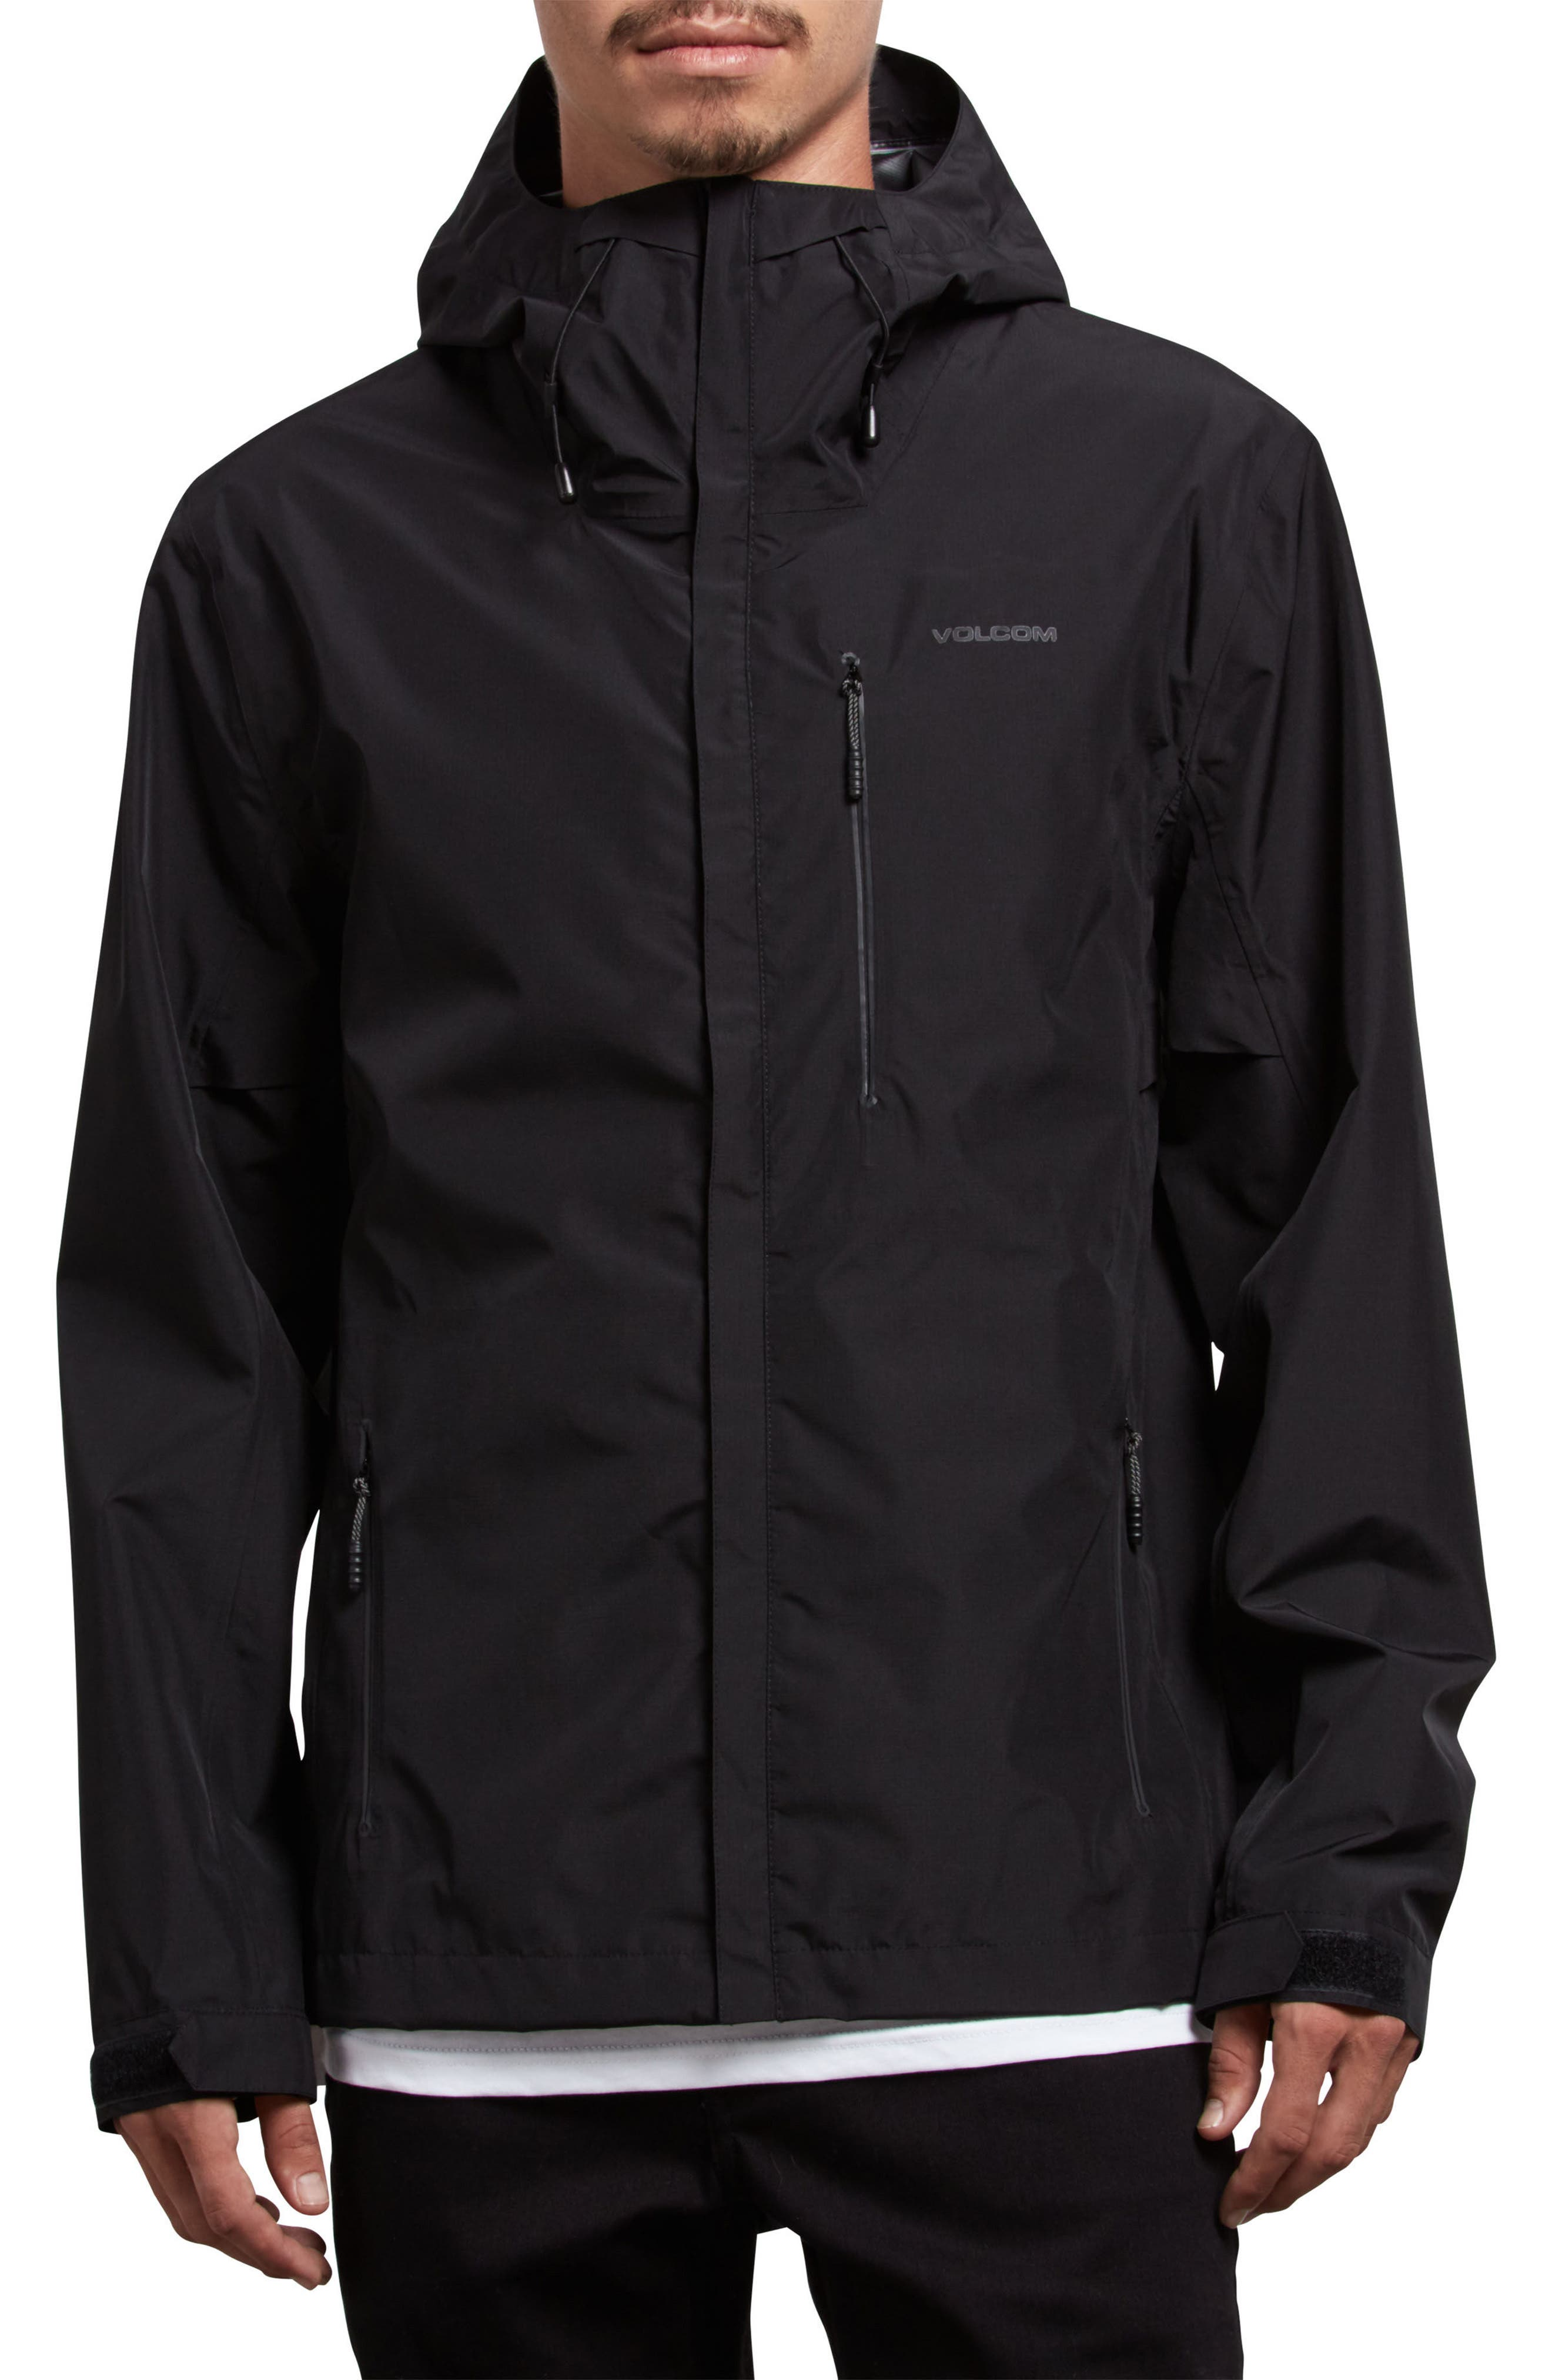 Stone Storm Jacket,                             Main thumbnail 1, color,                             Black